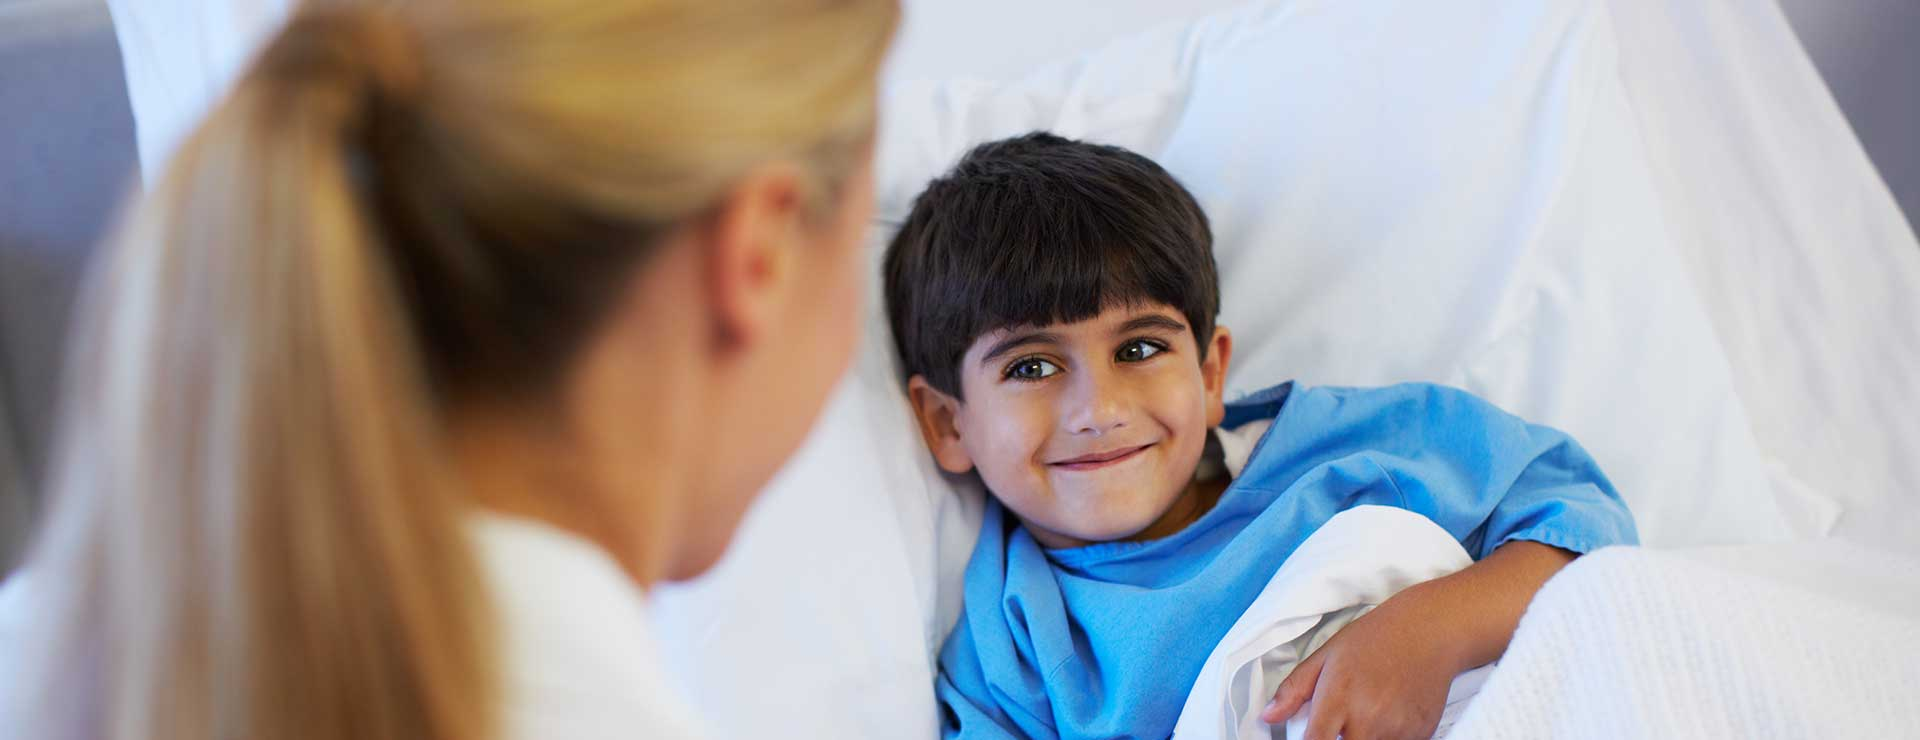 A child smiles at his doctor from his hospital bed.